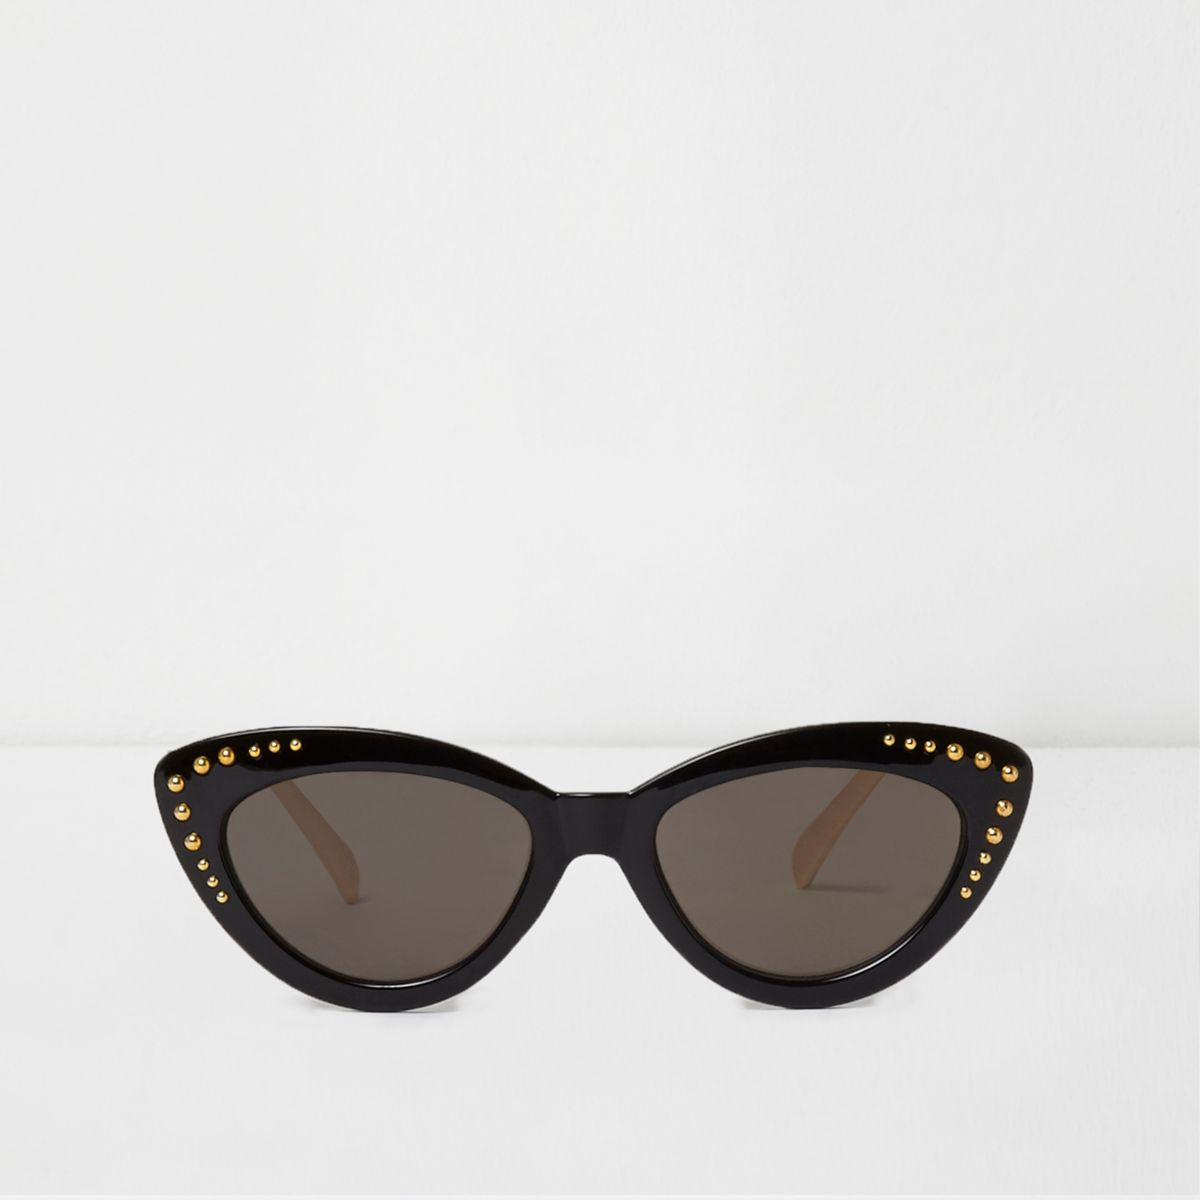 Black studded cat eye sunglasses